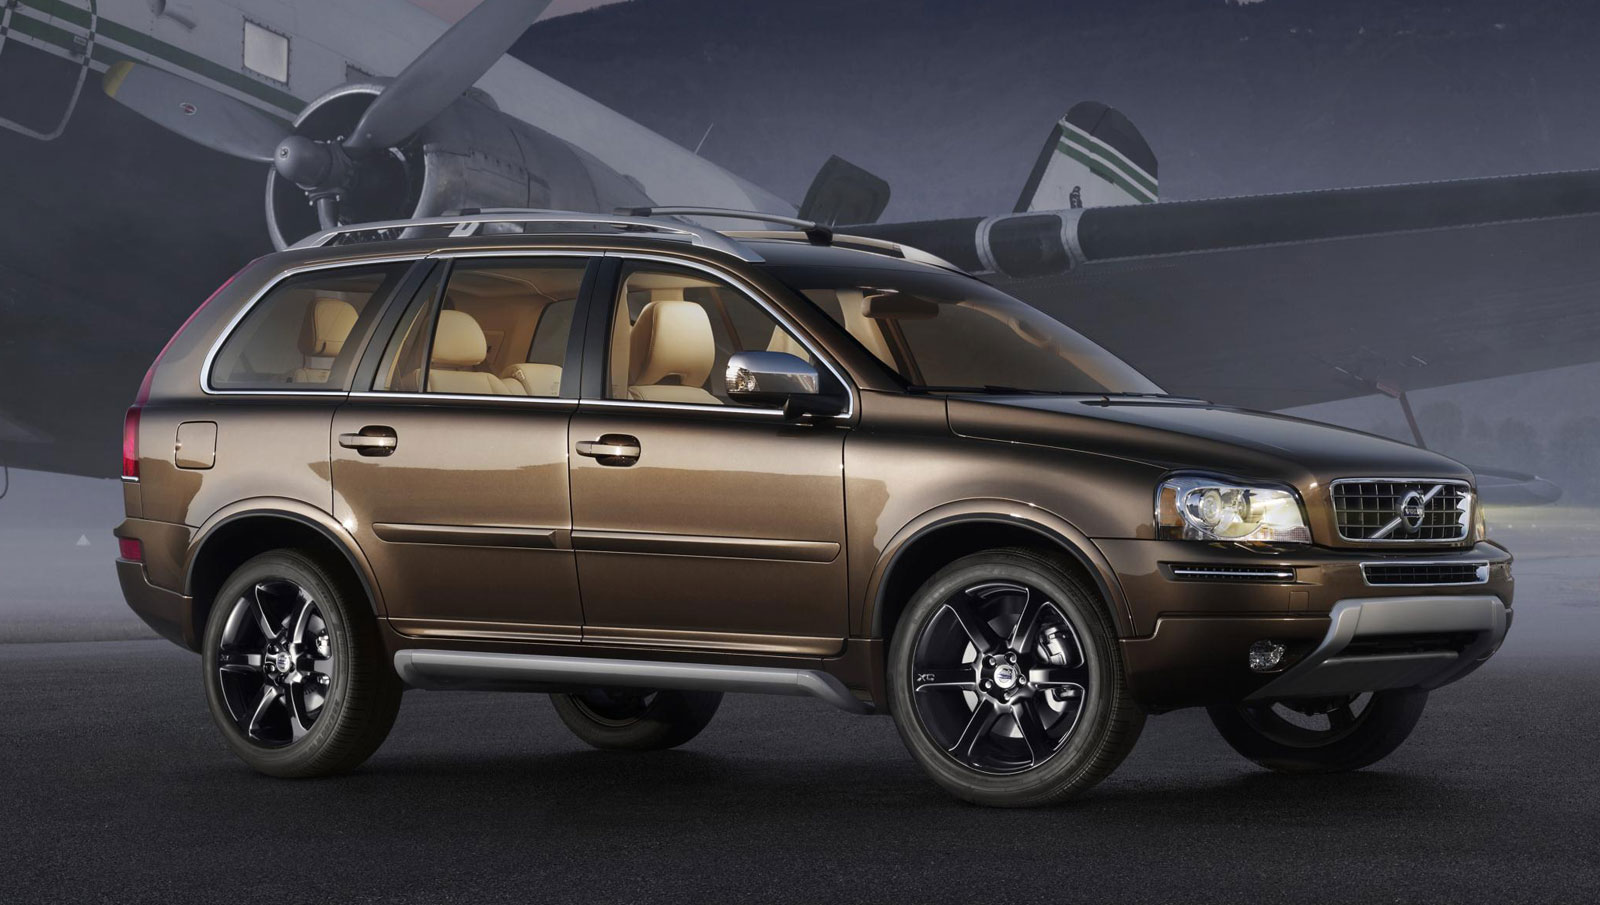 2013 volvo xc90 information and photos zombiedrive. Black Bedroom Furniture Sets. Home Design Ideas